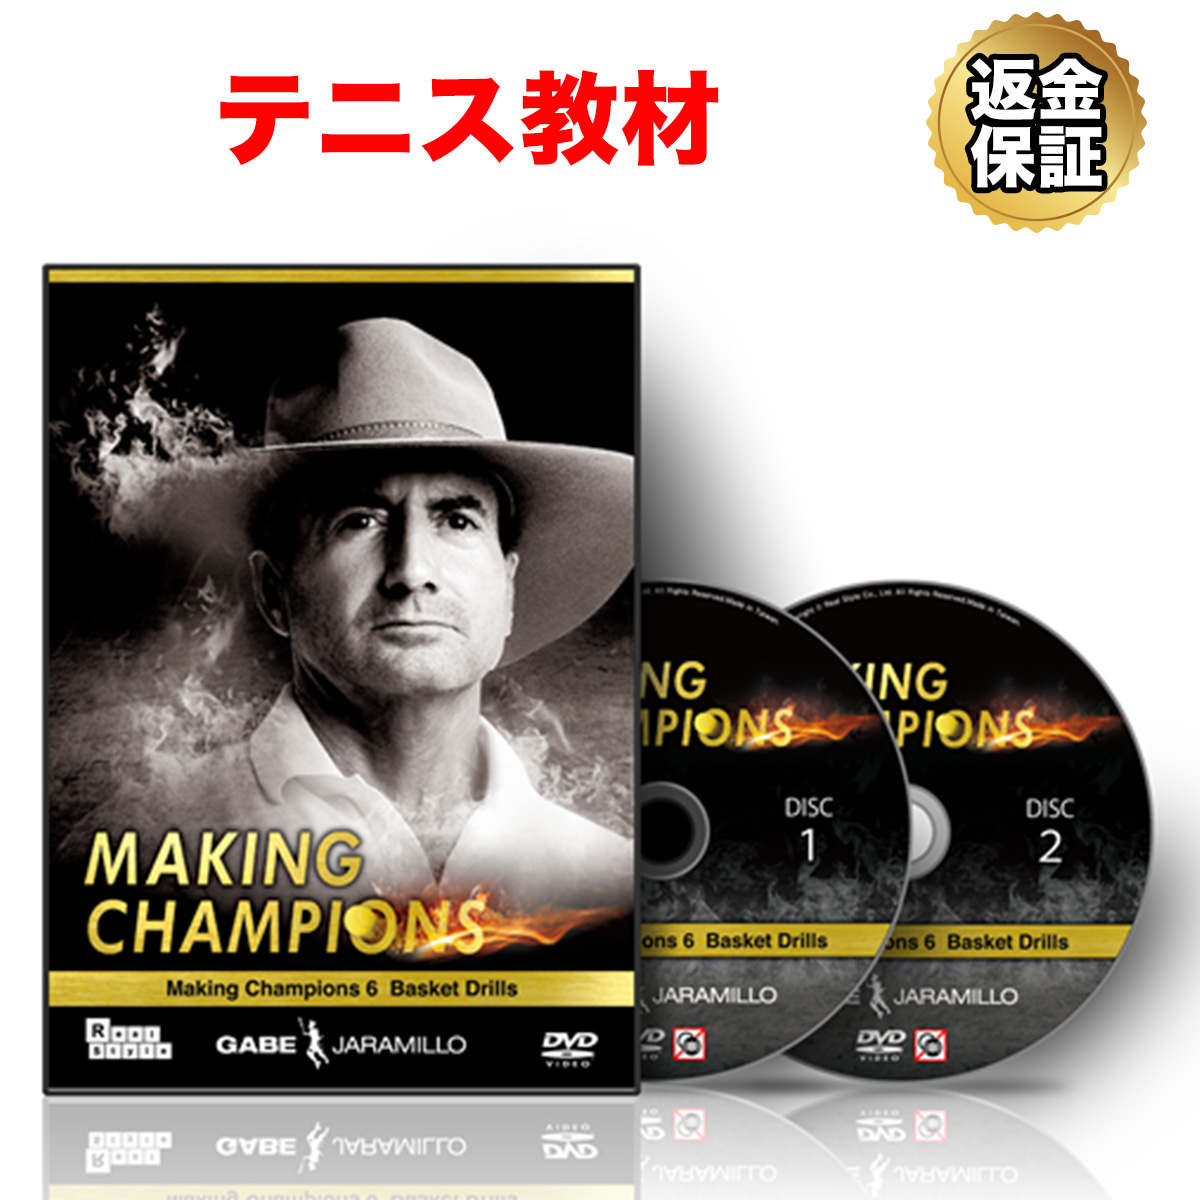 【テニス】Making Champions 6 Basket Drills